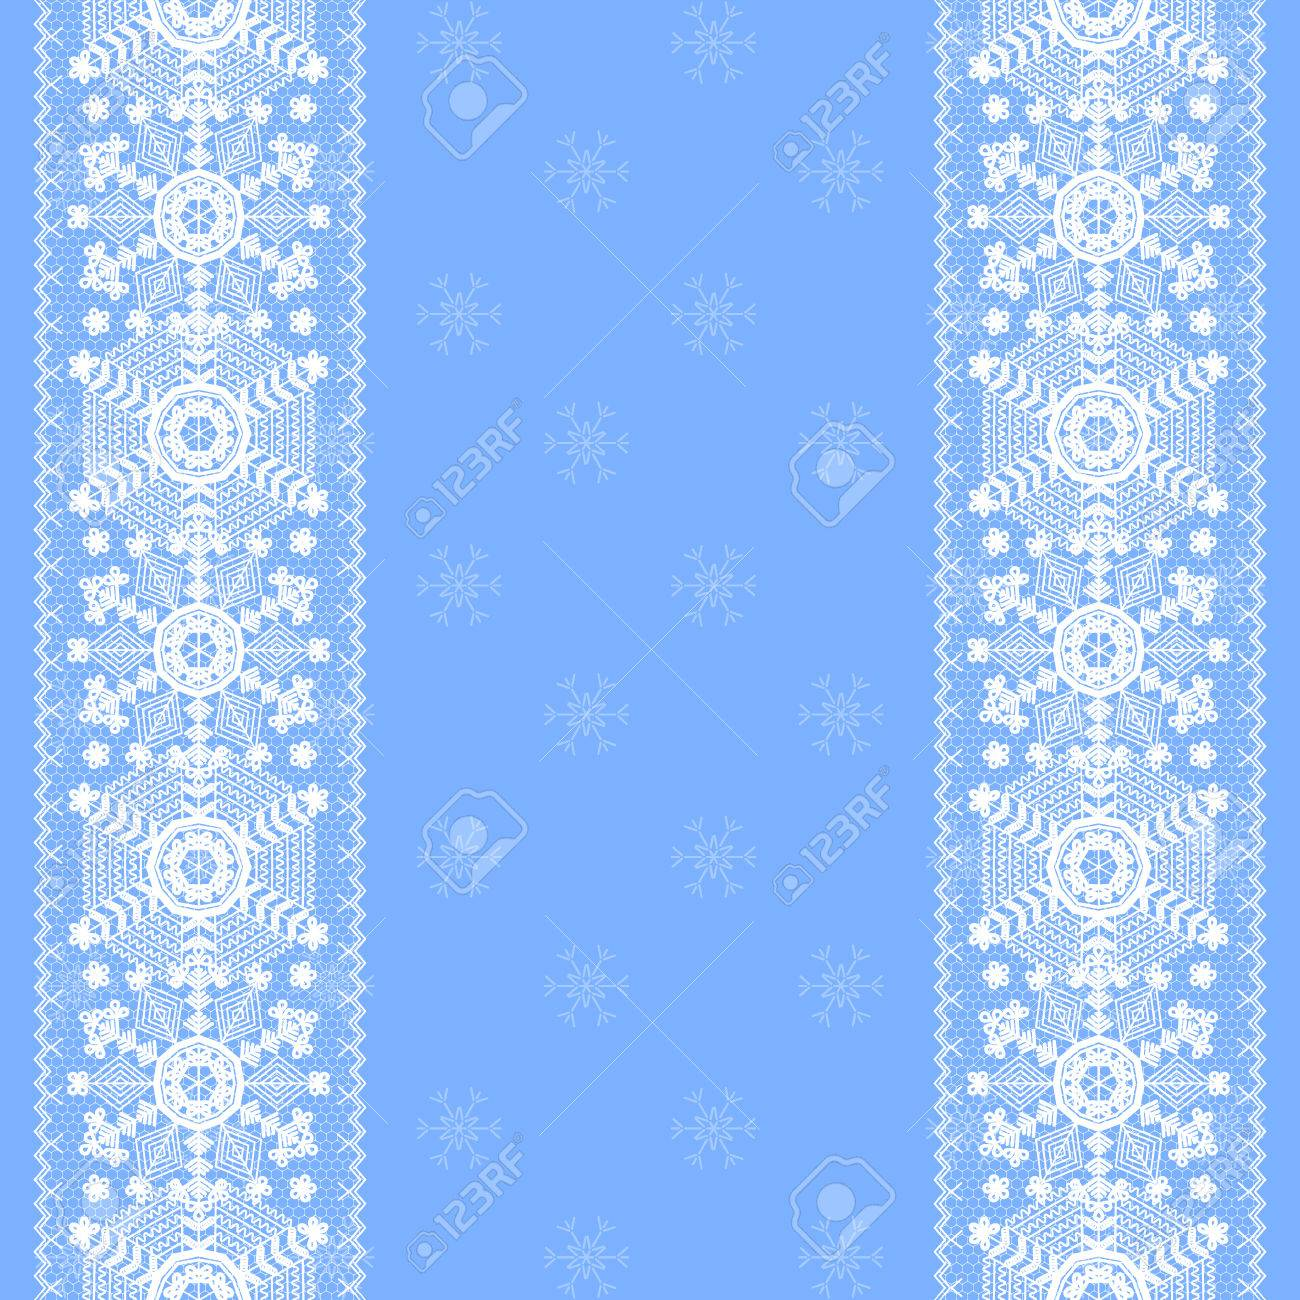 christmas card with lace snowflakes pattern border on blue